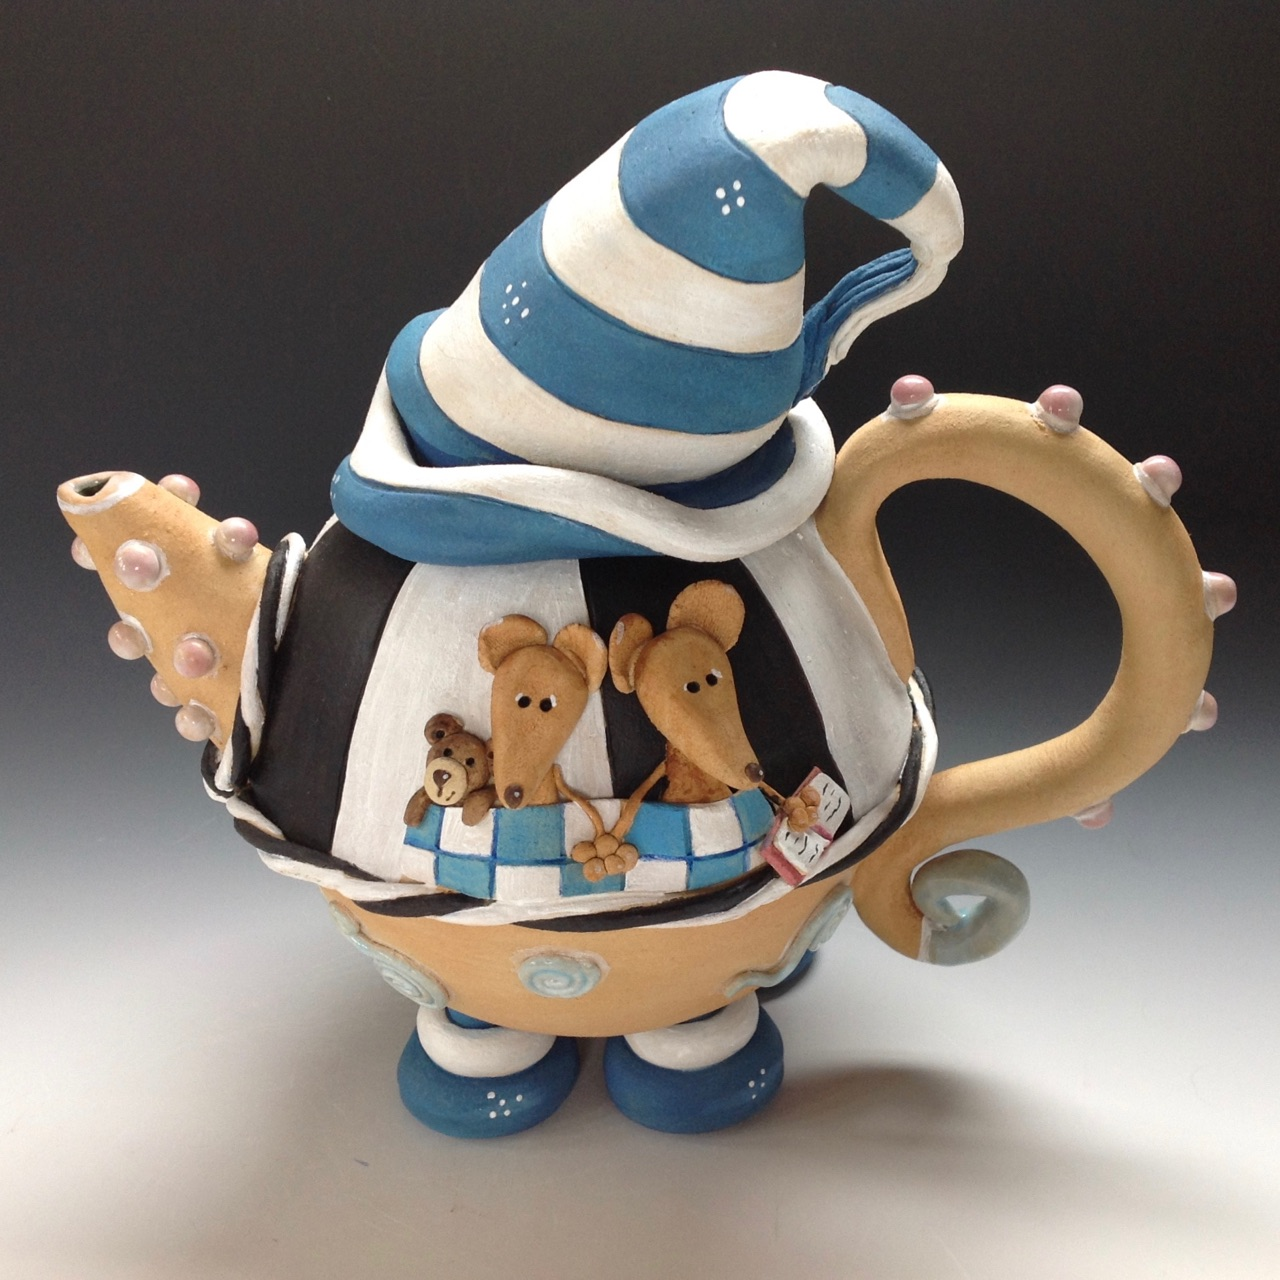 Whimsical Tea Pot Ceramic Pottery